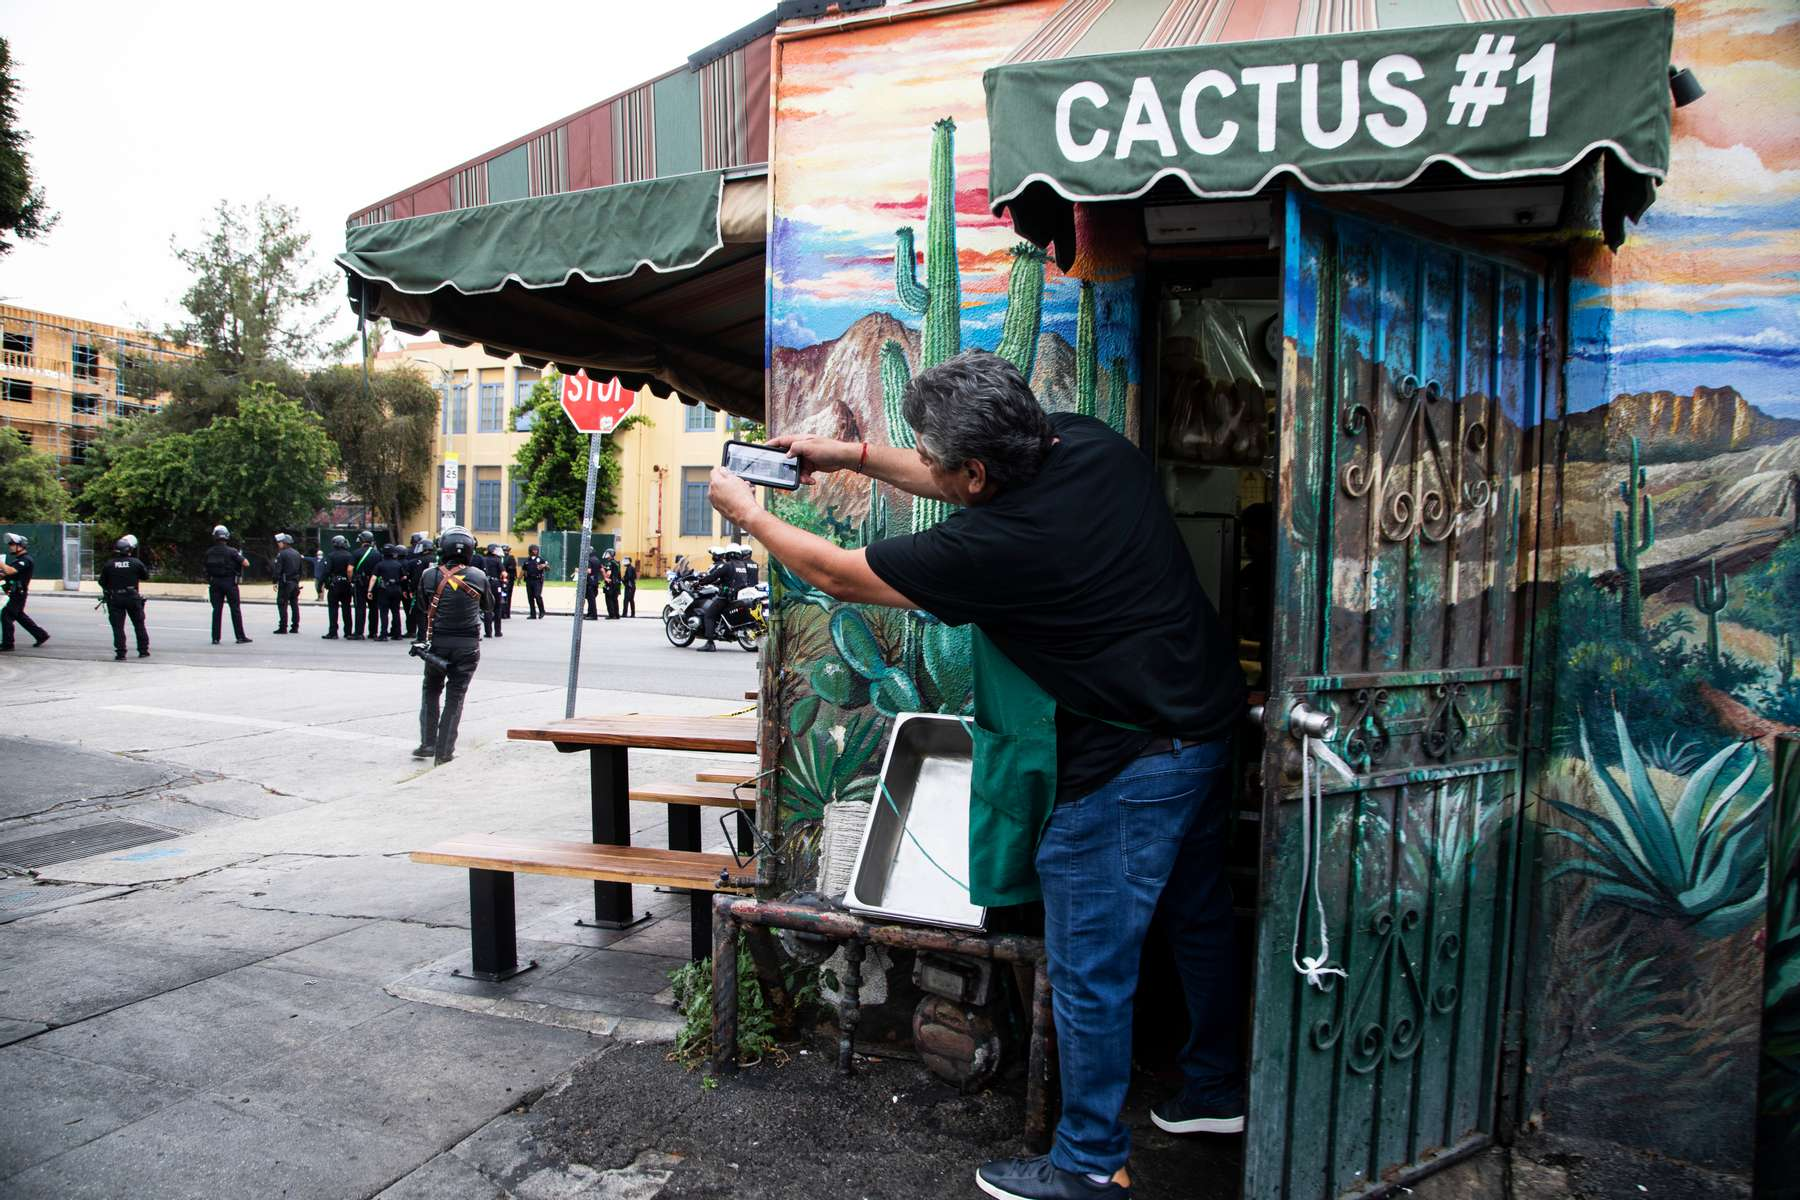 A man get out of his store briefly to take pictures of police arriving to enforce curfew over protesters  during a march over the death of George Floyd, an unarmed black man, who died after a police officer kneeled on his neck for several minutes, in the Hollywood neighborhood on June 1, 2020, in Los Angeles, California.